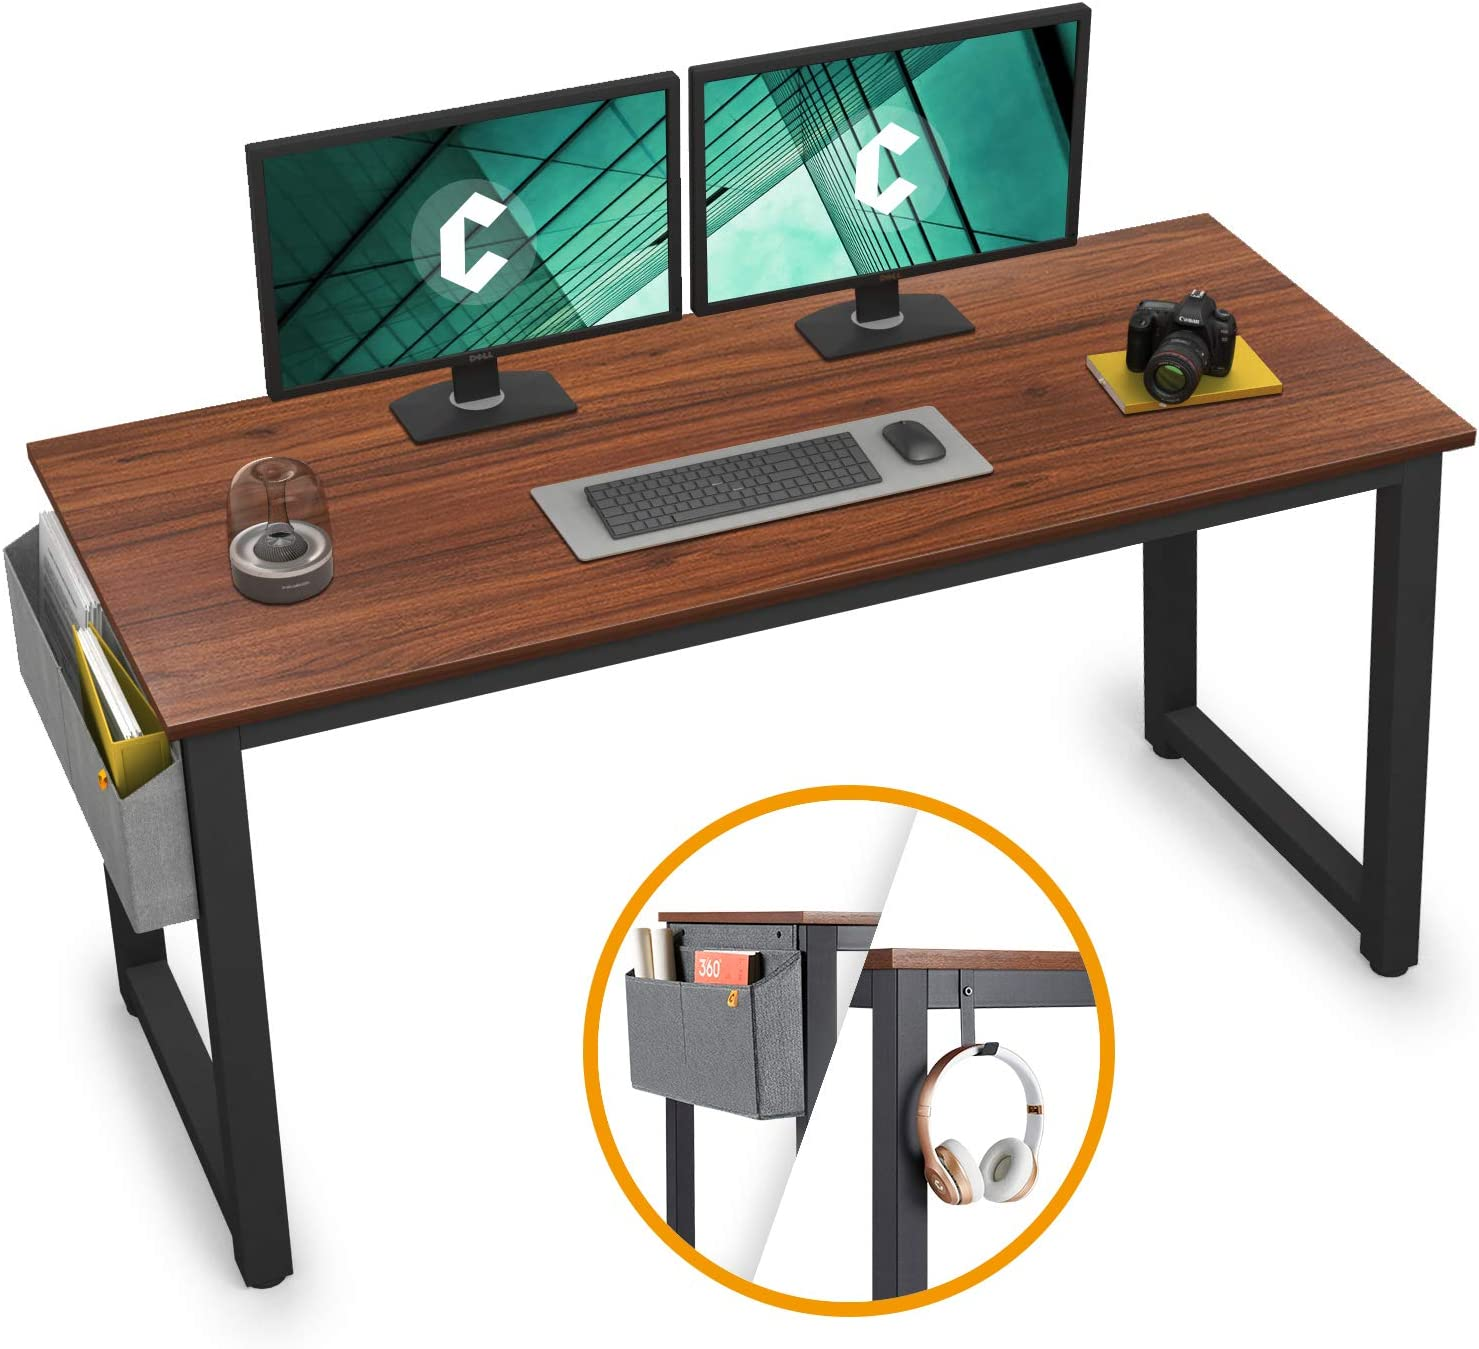 "Cubiker Computer Desk 47"" Sturdy Office Desk Modern Simple Style Table for Home Office, Notebook Writing Desk with Extra Strong Legs, Espresso"